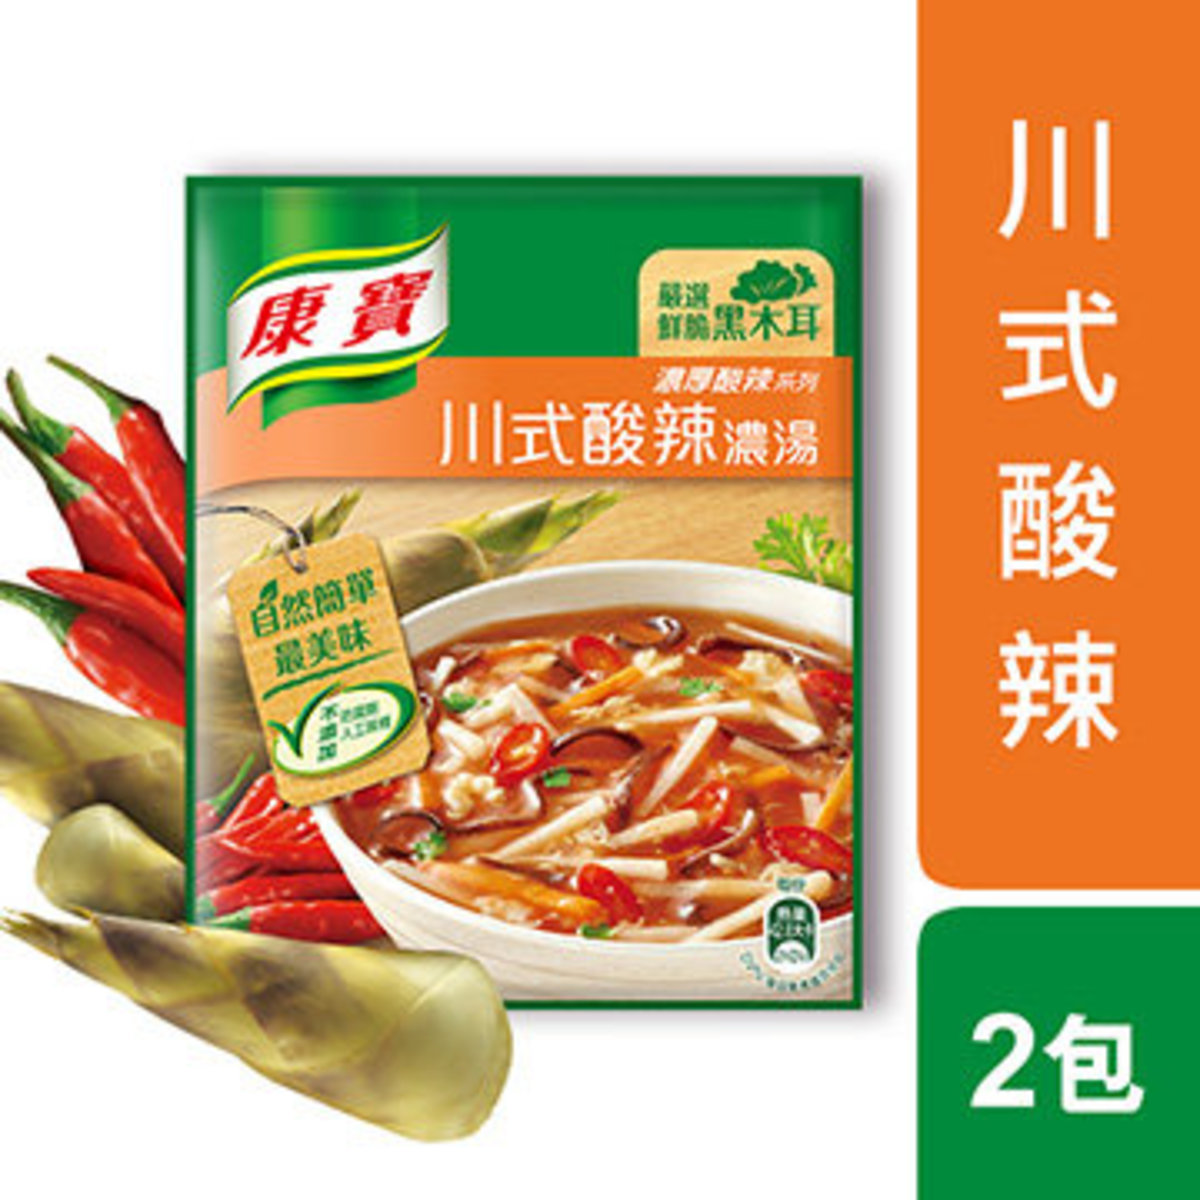 Knorr Extra Hot and Sour Soup 50.2g x 2 (08592)